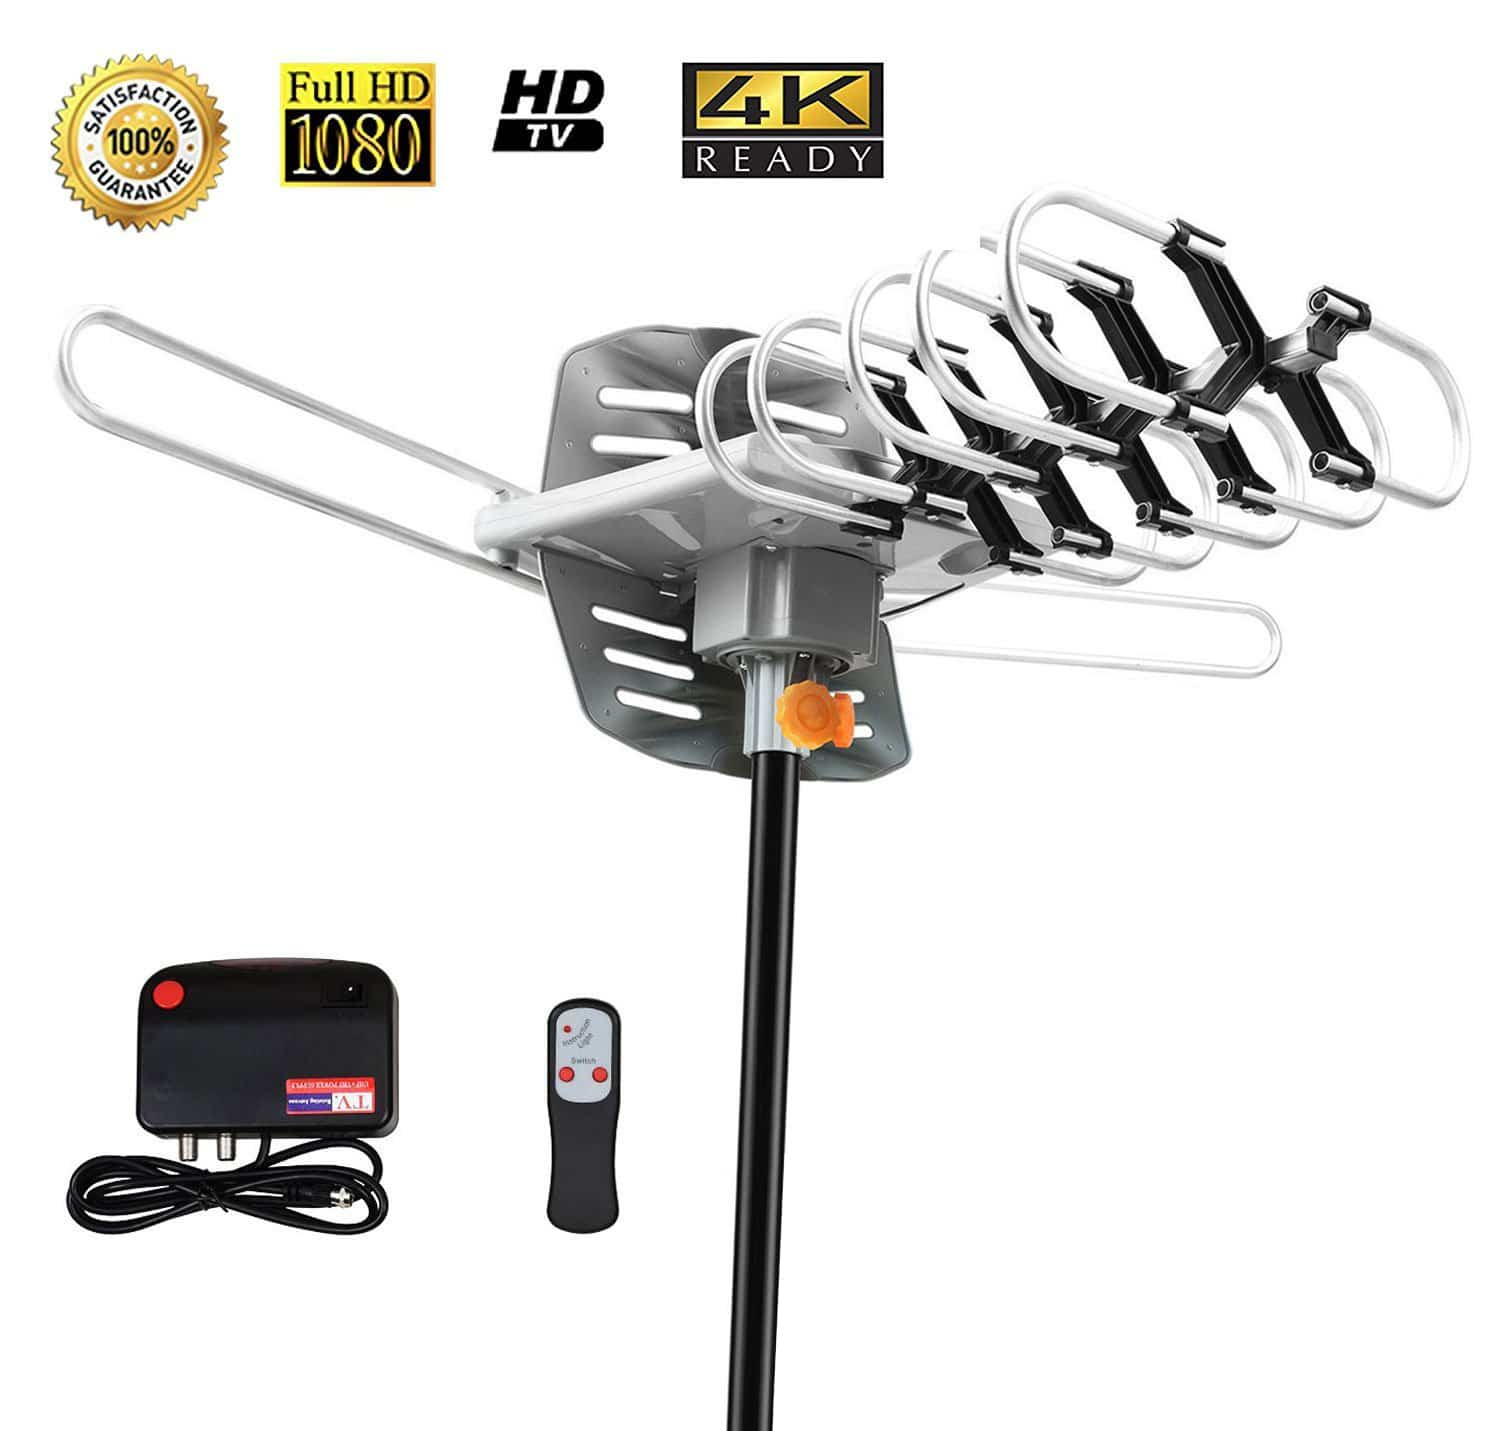 Made With What The Manufacturer Bills As Premium Materials Sobetter Amplified Outdoor 150 Mile Range Digital Tv Antenna Picks Up Vhf Signals From 40 To